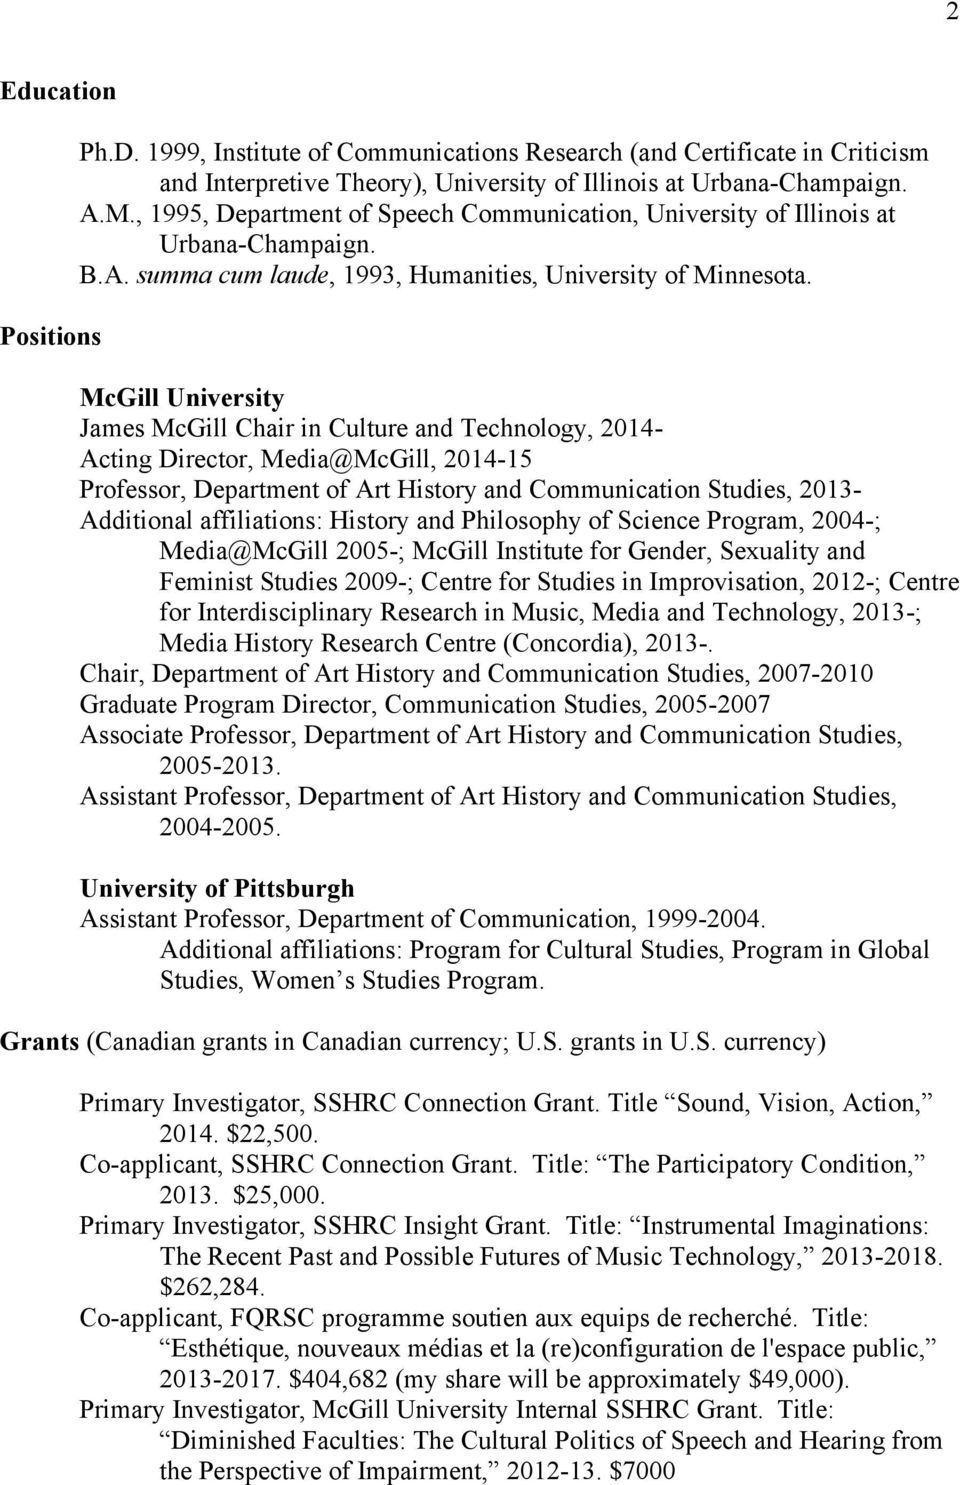 McGill University James McGill Chair in Culture and Technology, 2014- Acting Director, Media@McGill, 2014-15 Professor, Department of Art History and Communication Studies, 2013- Additional